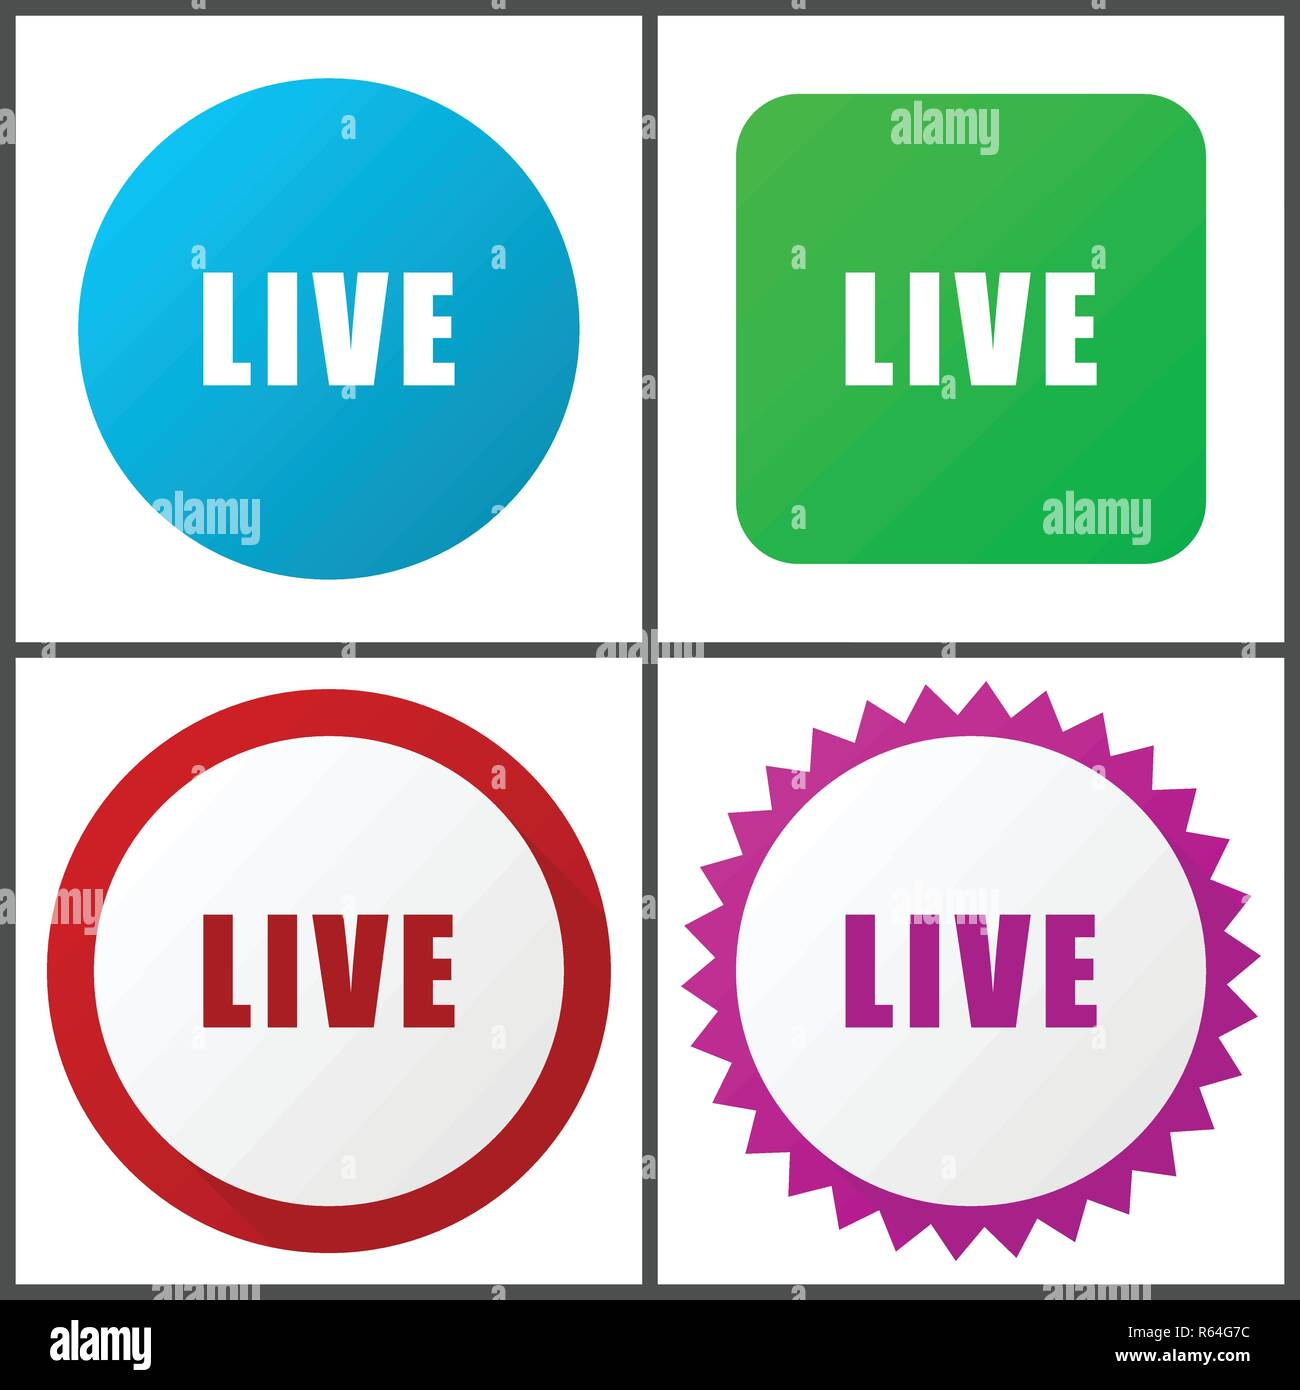 Live red, blue, green and pink vector icon set. Web icons. Flat design signs and symbols easy to edit - Stock Image